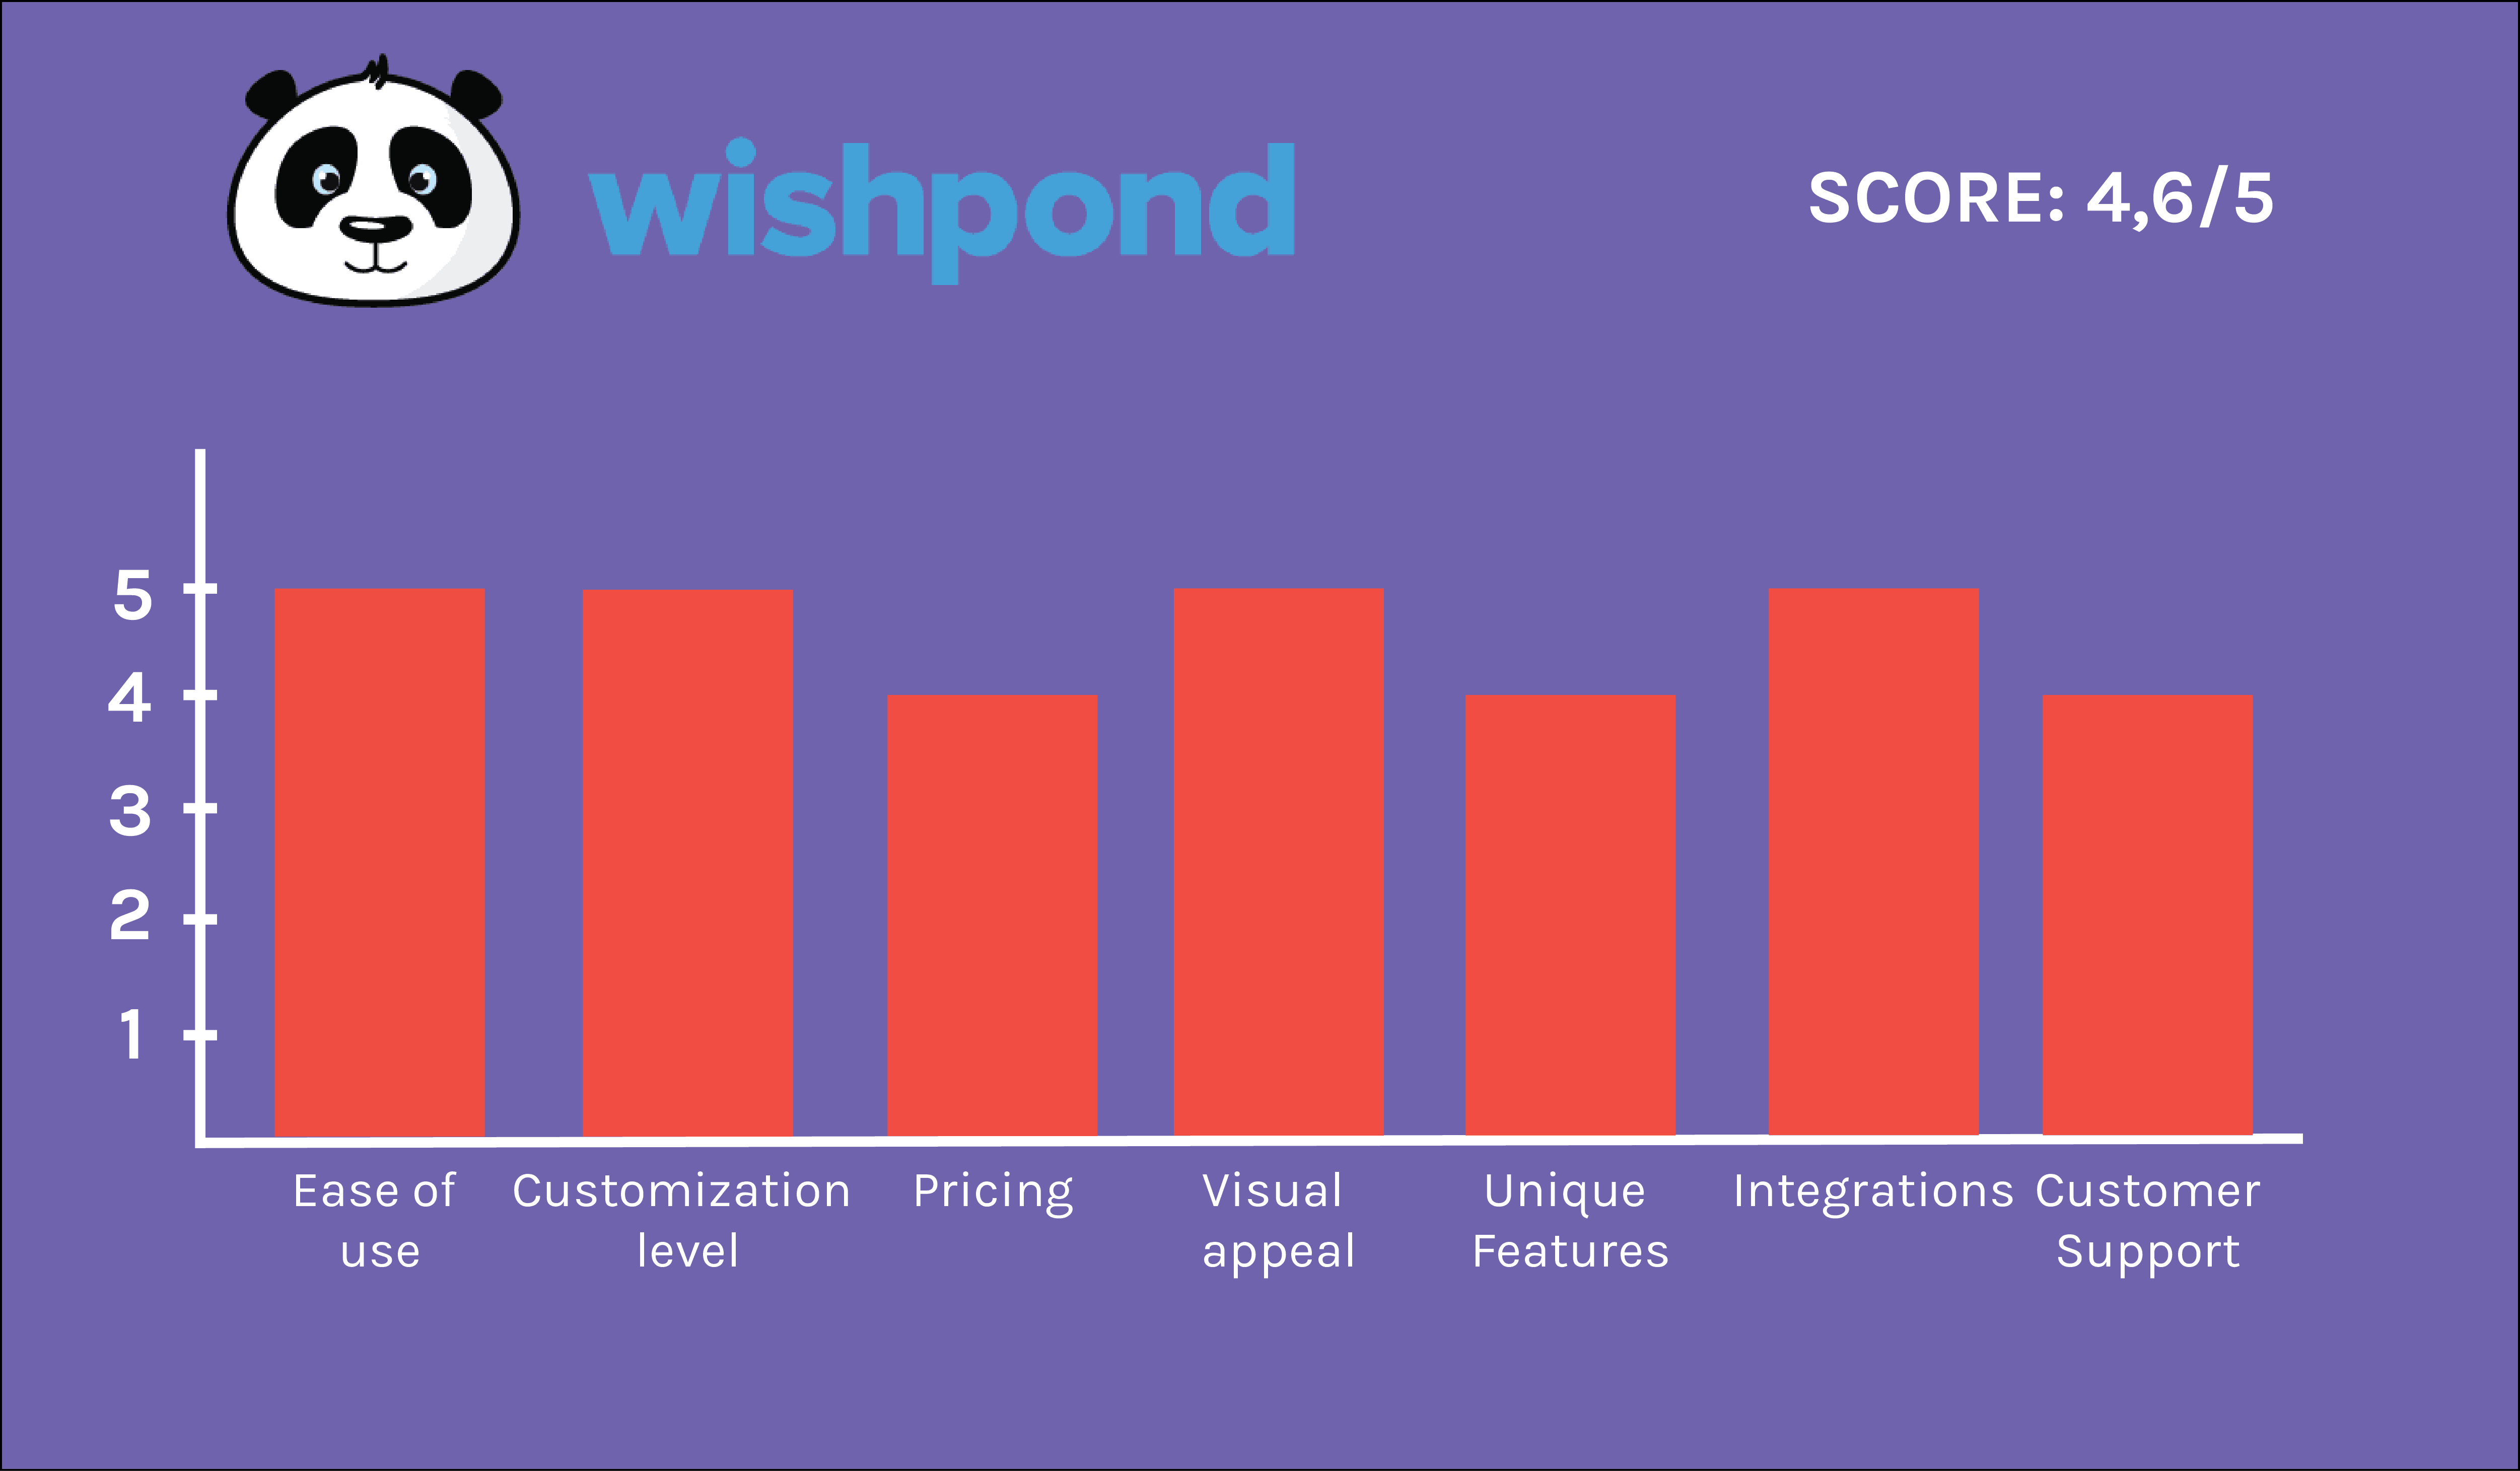 Wishpond graph